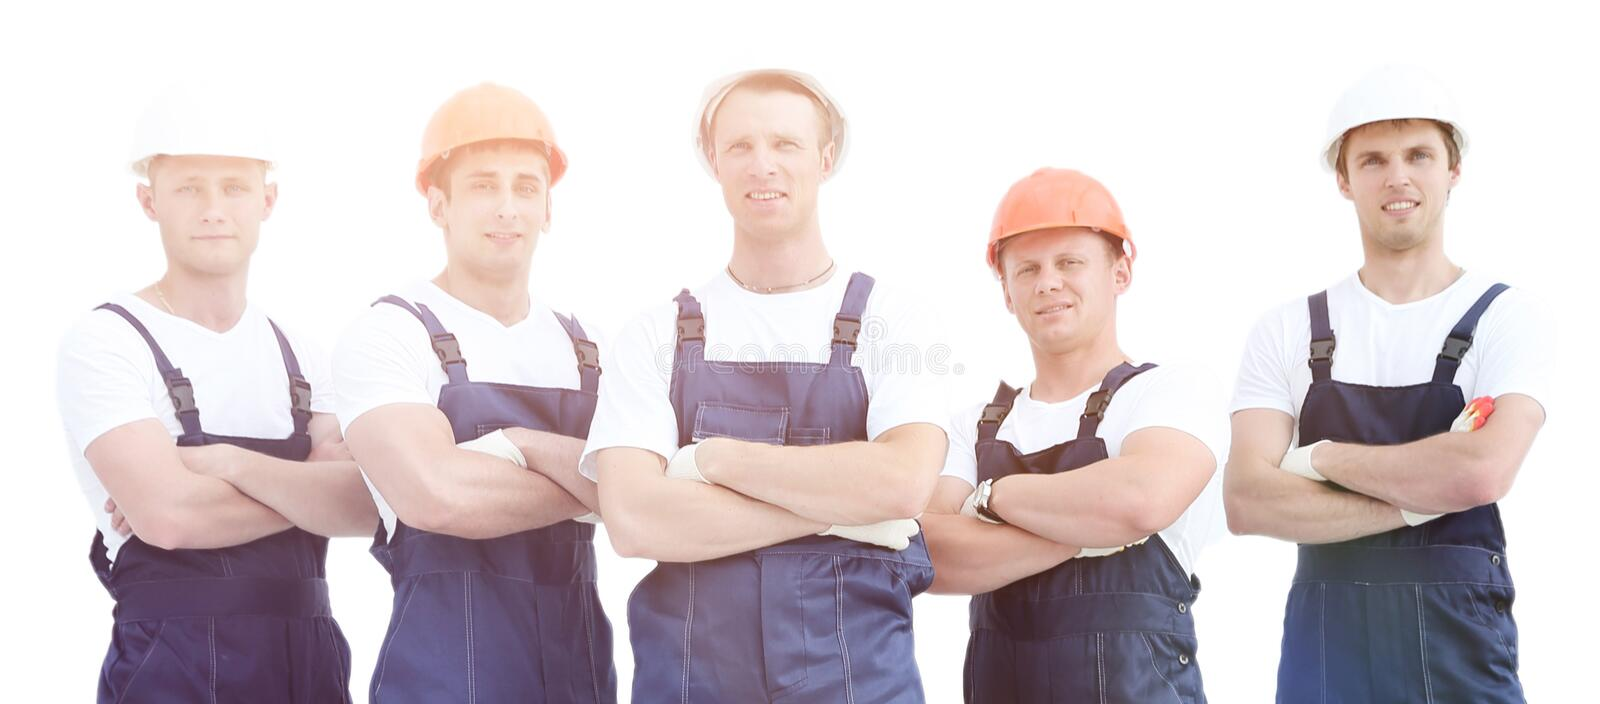 Group of professional industrial workers. stock photography